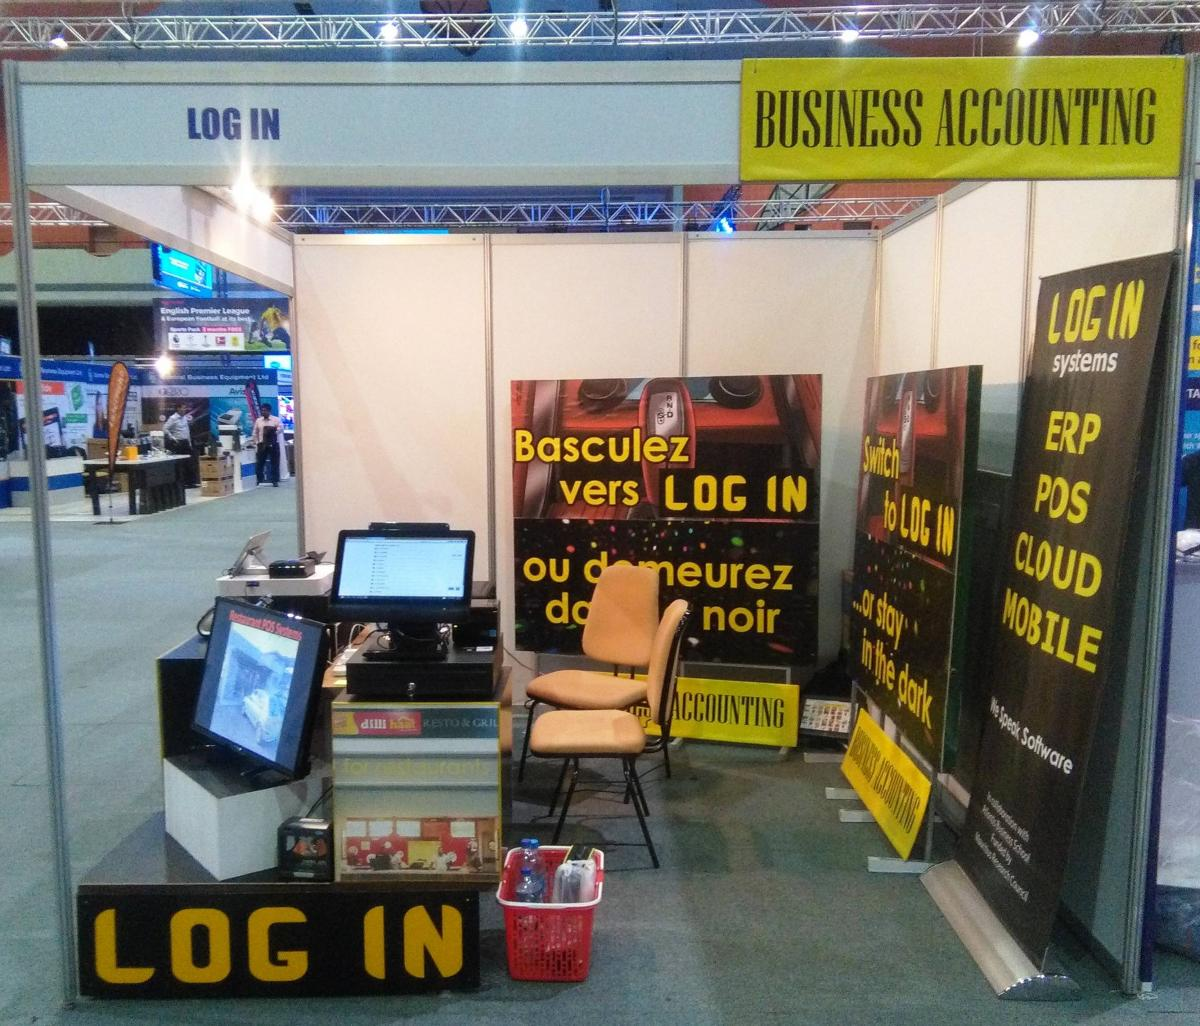 LOG IN's stand at Infotech 2018 where we showcased our POS Systems for businesses